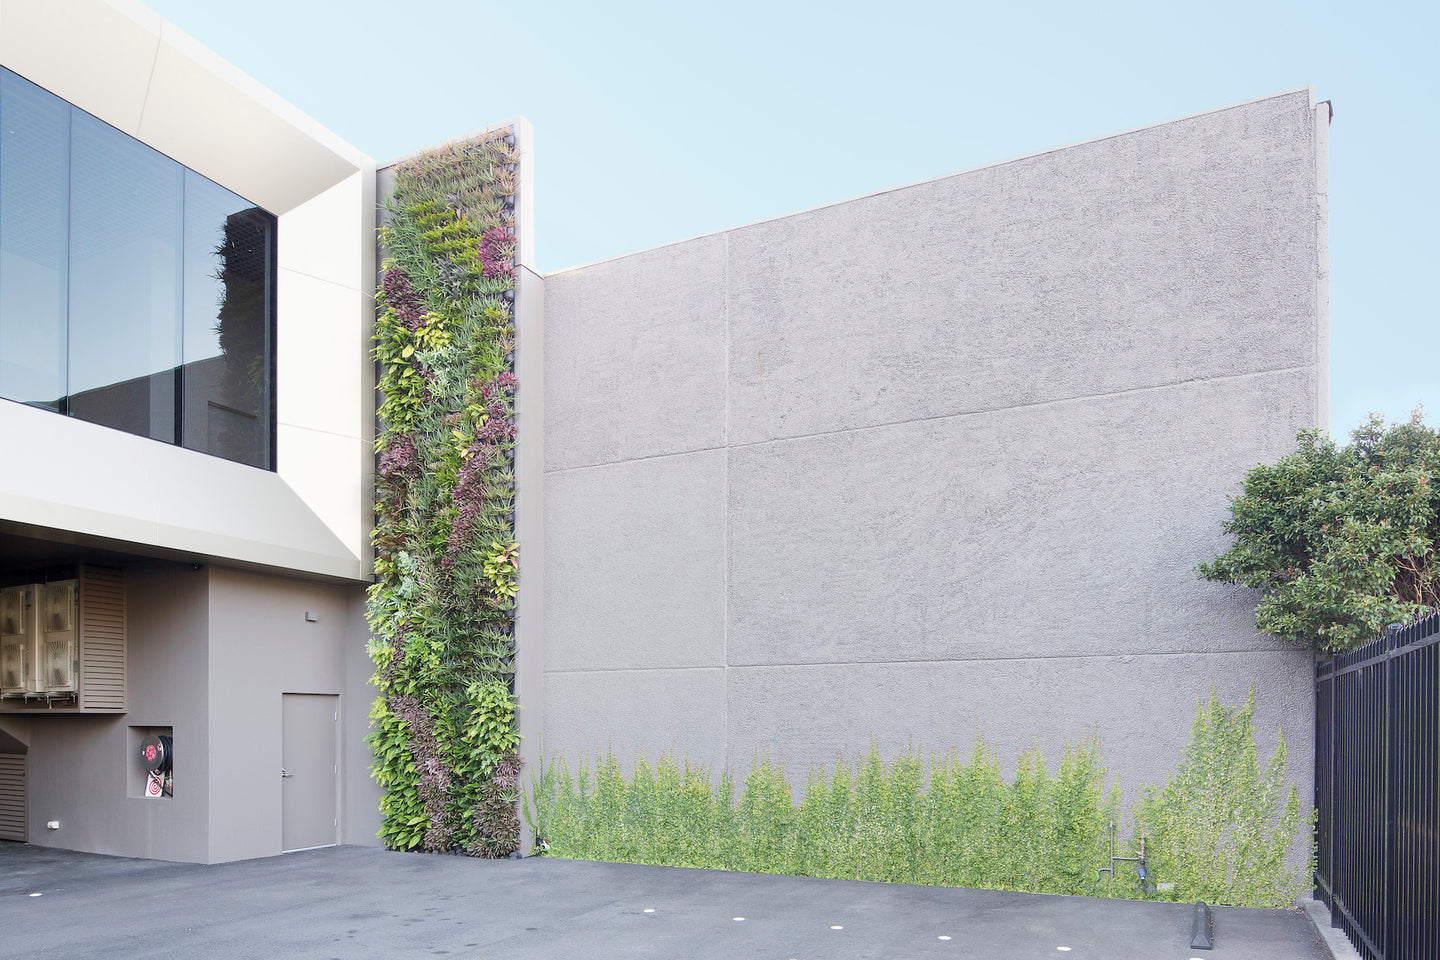 Warehouse Vertical Green Wall By Greenwall Solutions using Green4Air Vertical Green Wall Garden Kit